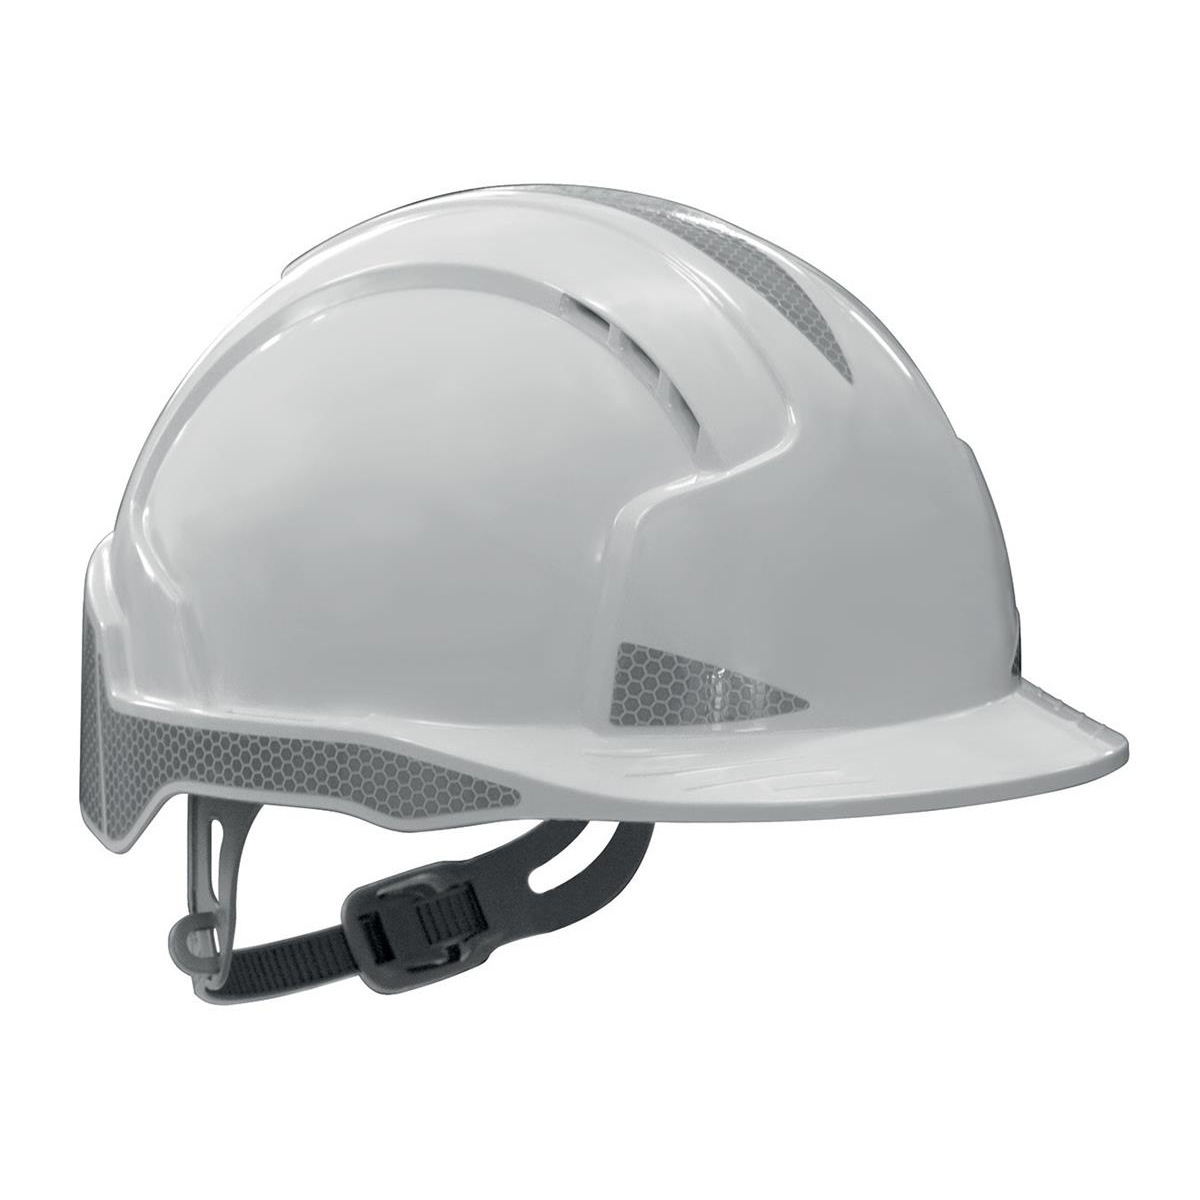 Safety helmets JSP EVOLite Safety Helmet ABS 6-point Harness Reflective Strips EN397 White Ref AJB160-400-100